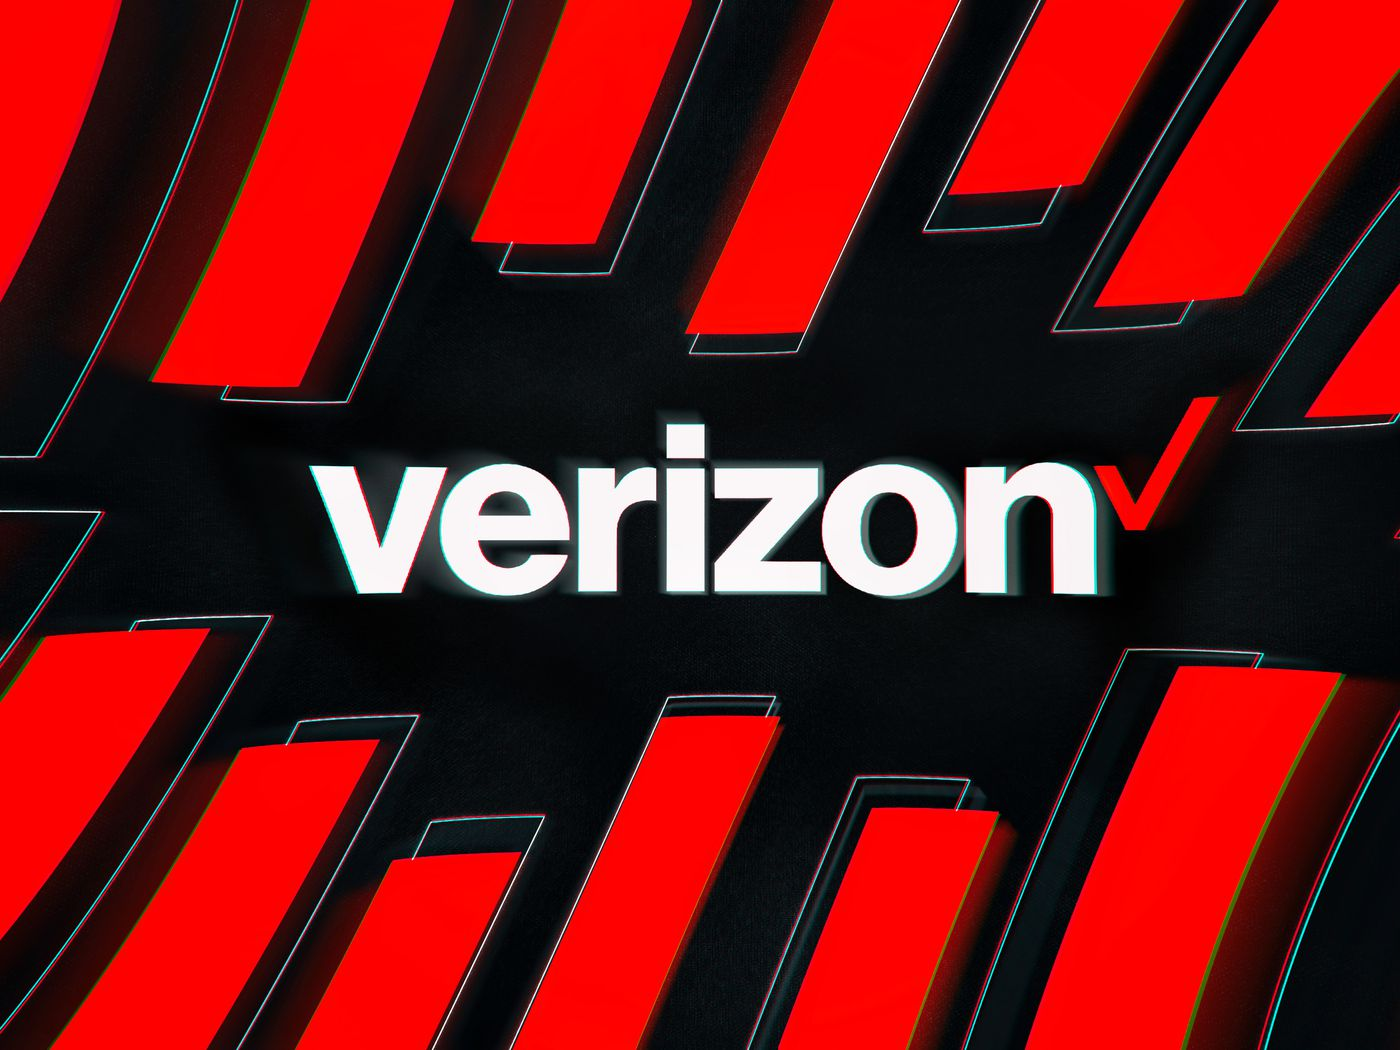 Verizon Now Including Full Disney Plus Hulu And Espn Plus Bundle With Some Unlimited Plans The Verge